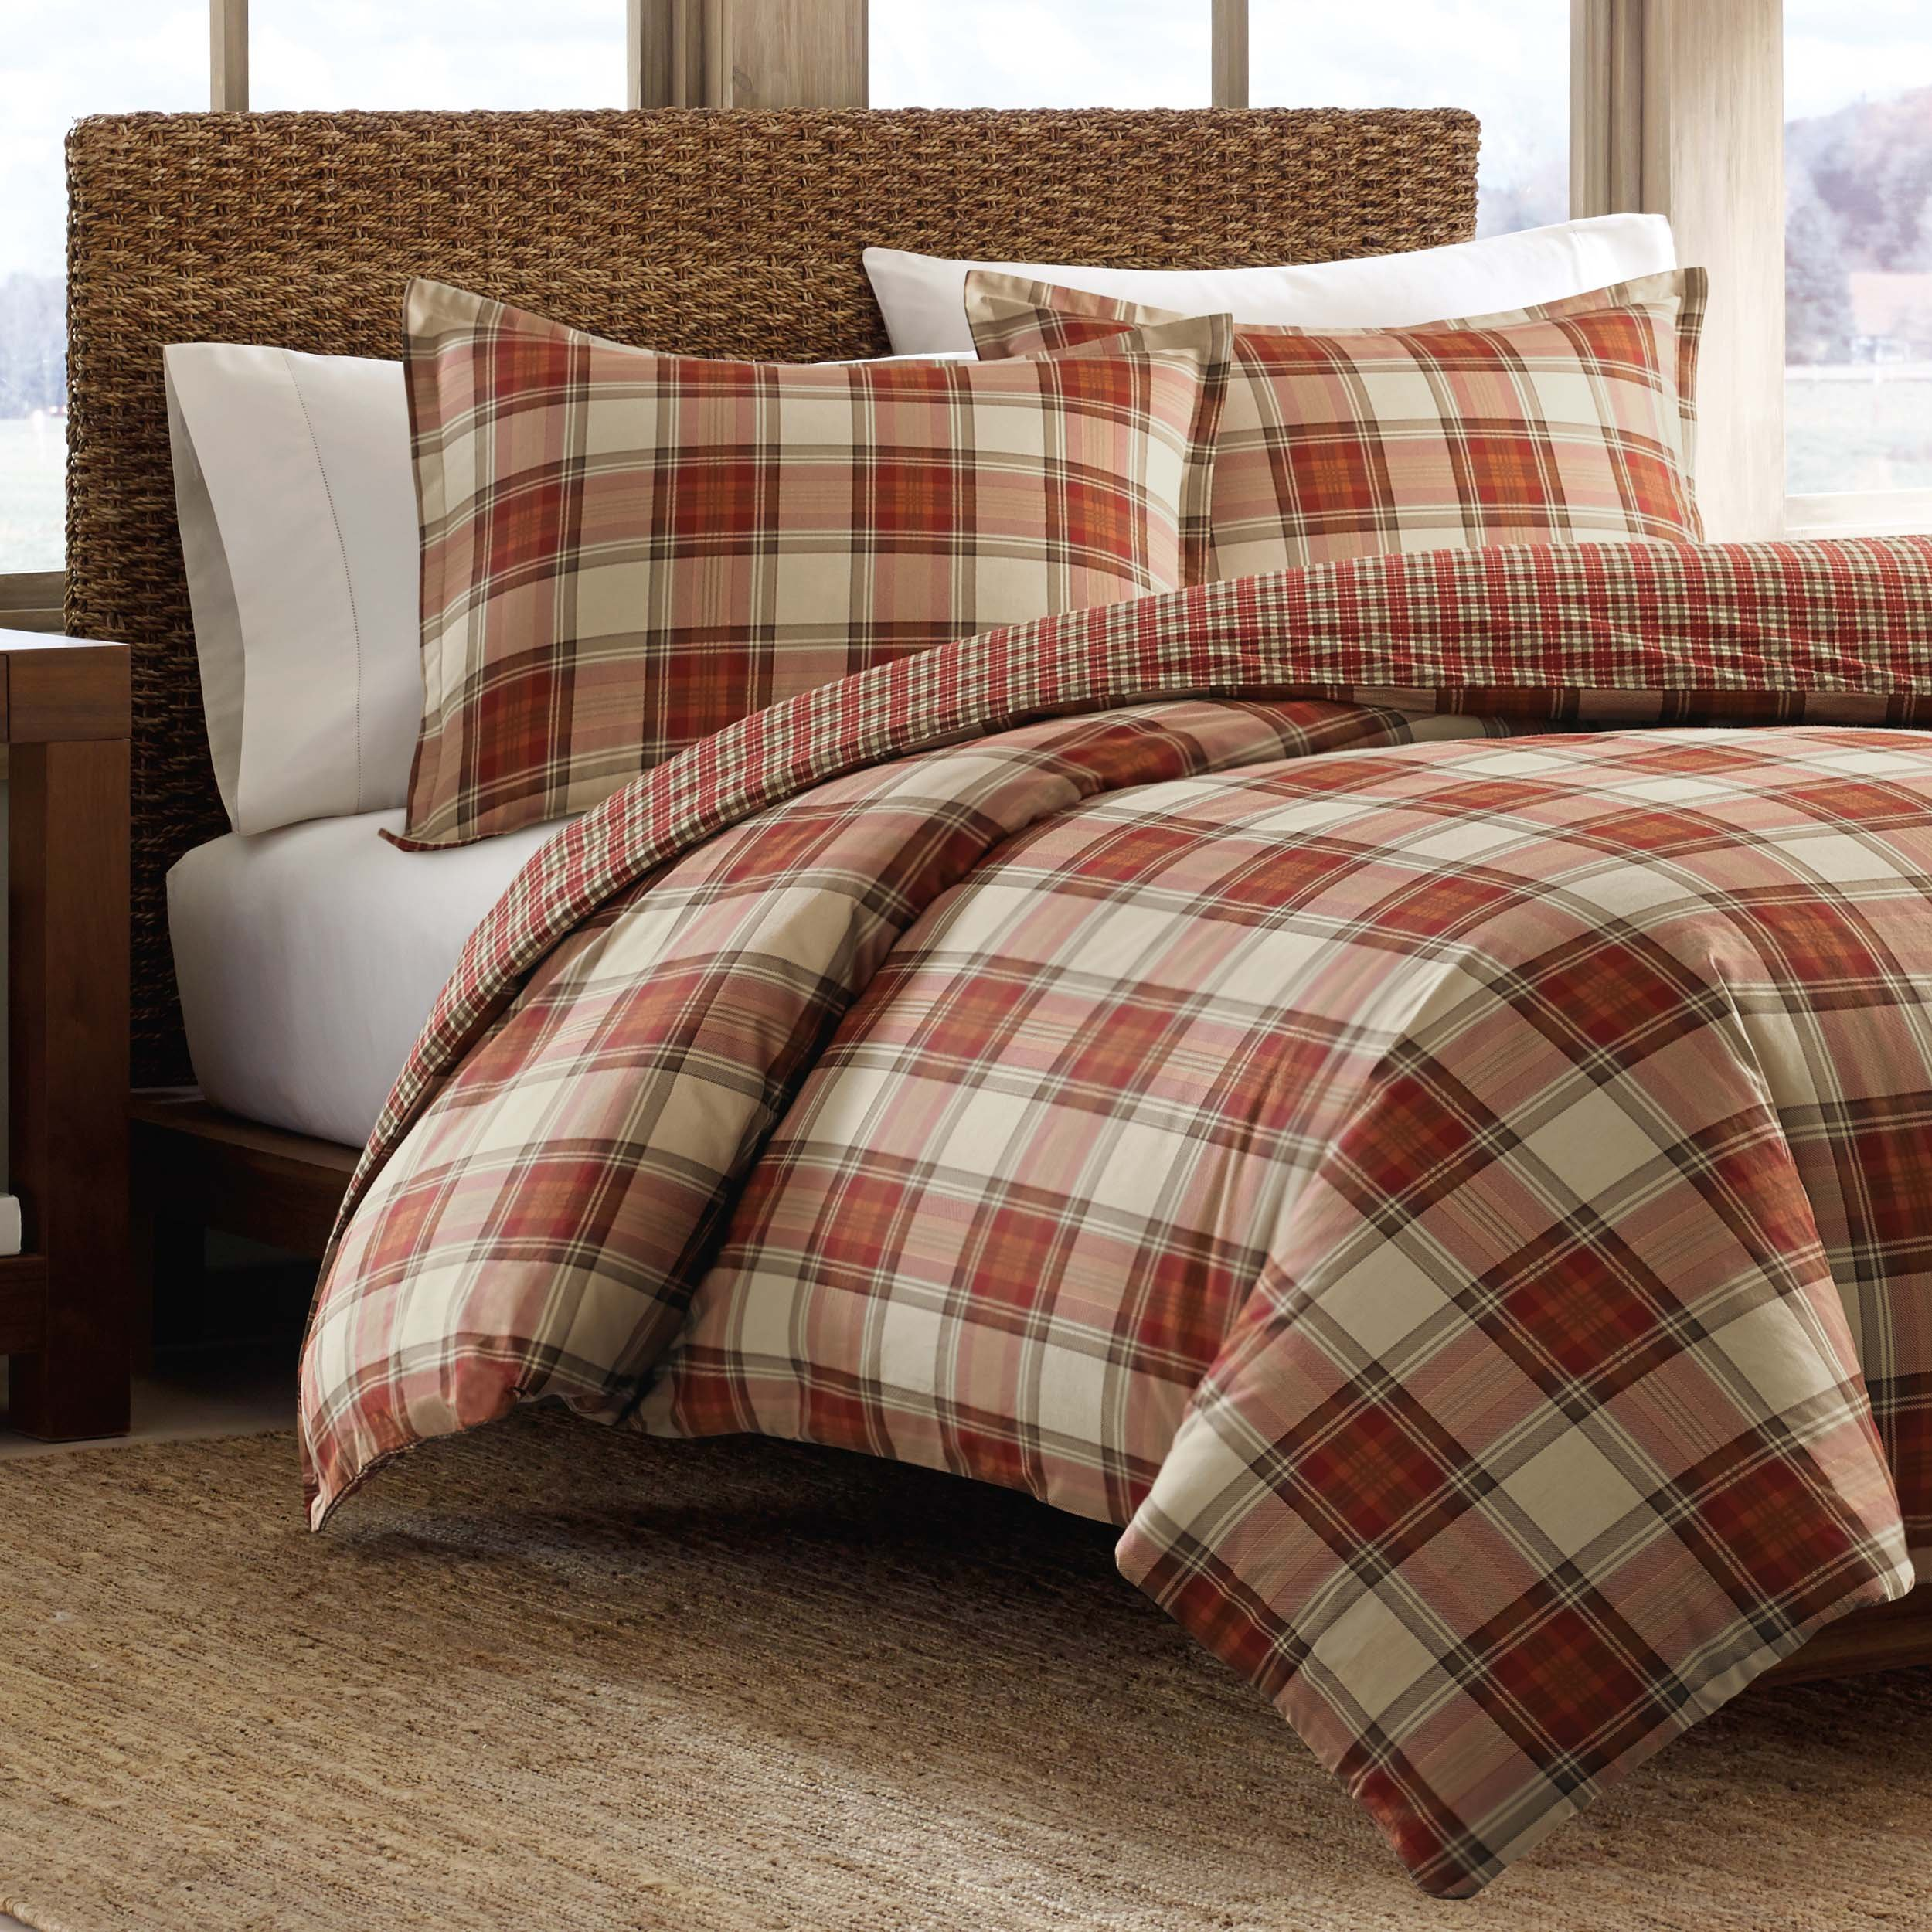 Eddie bauer edgewood plaid duvet cover set king red